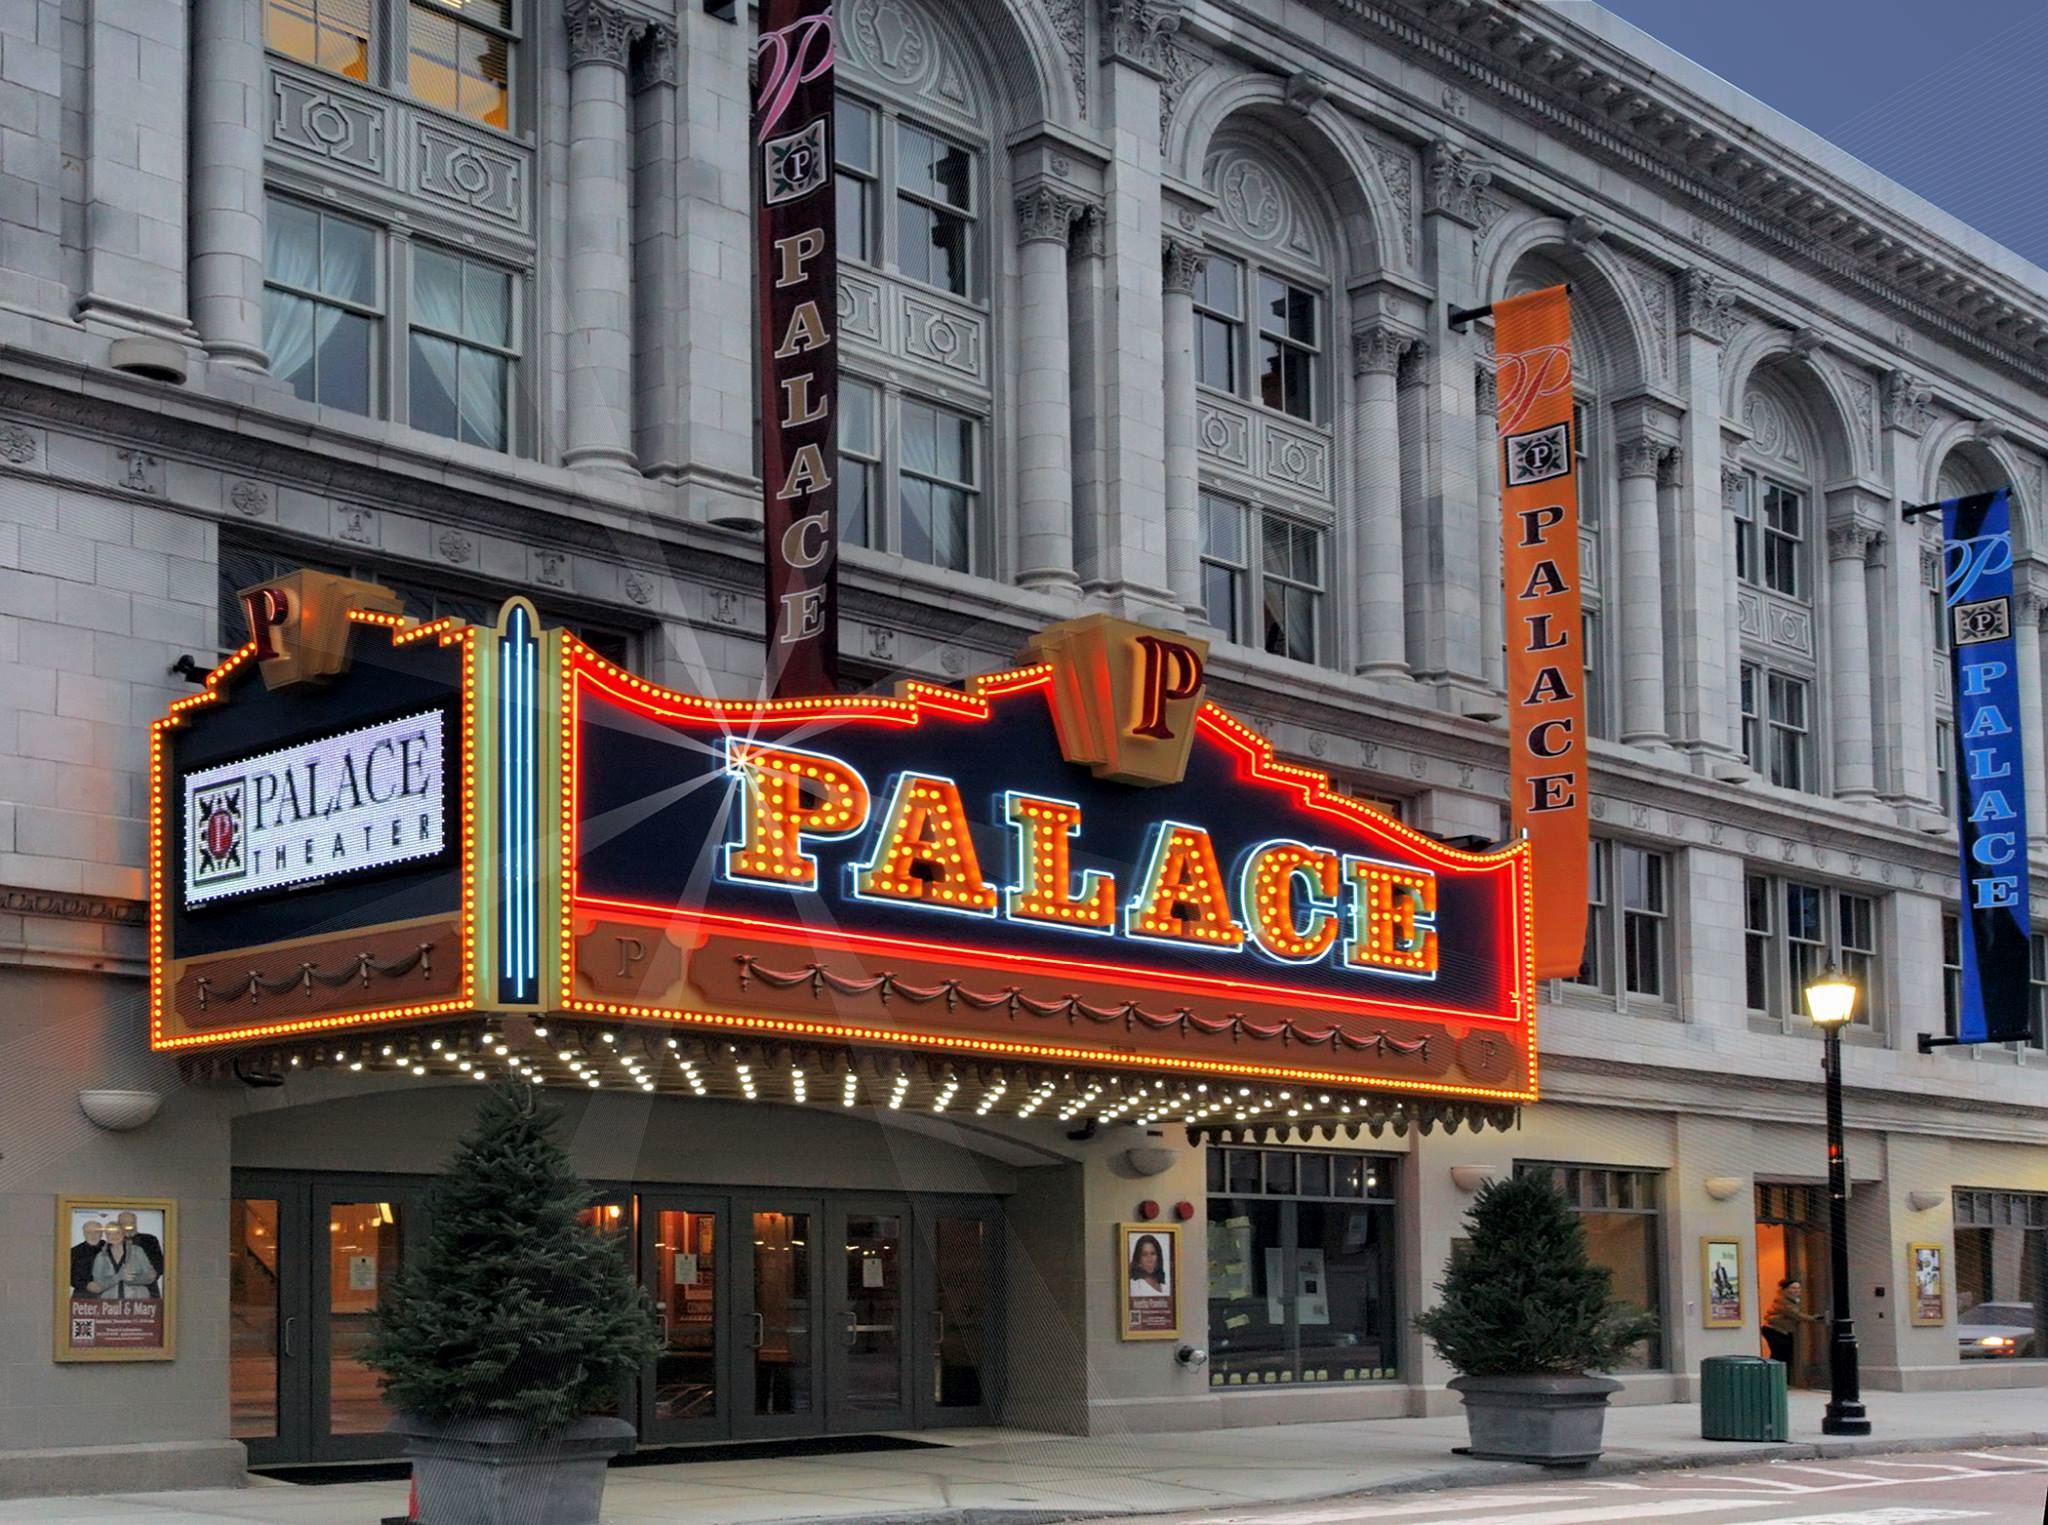 Palace Theater - 2